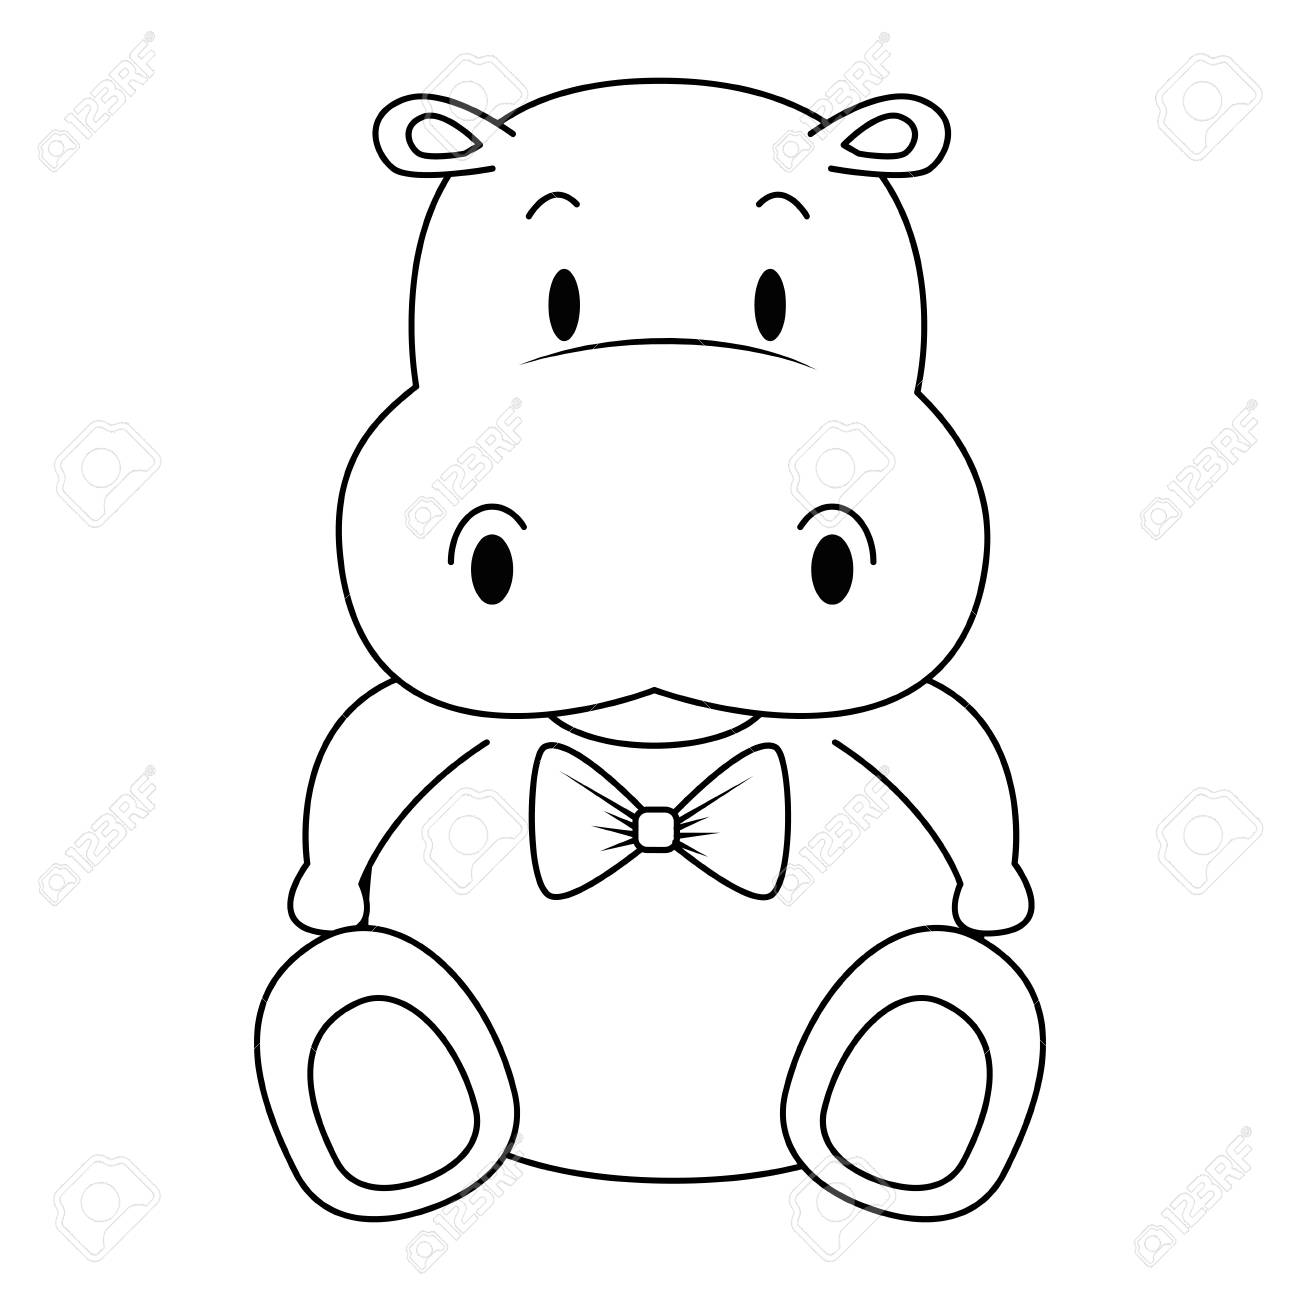 cute and adorable hippo character vector illustration design - 112282726